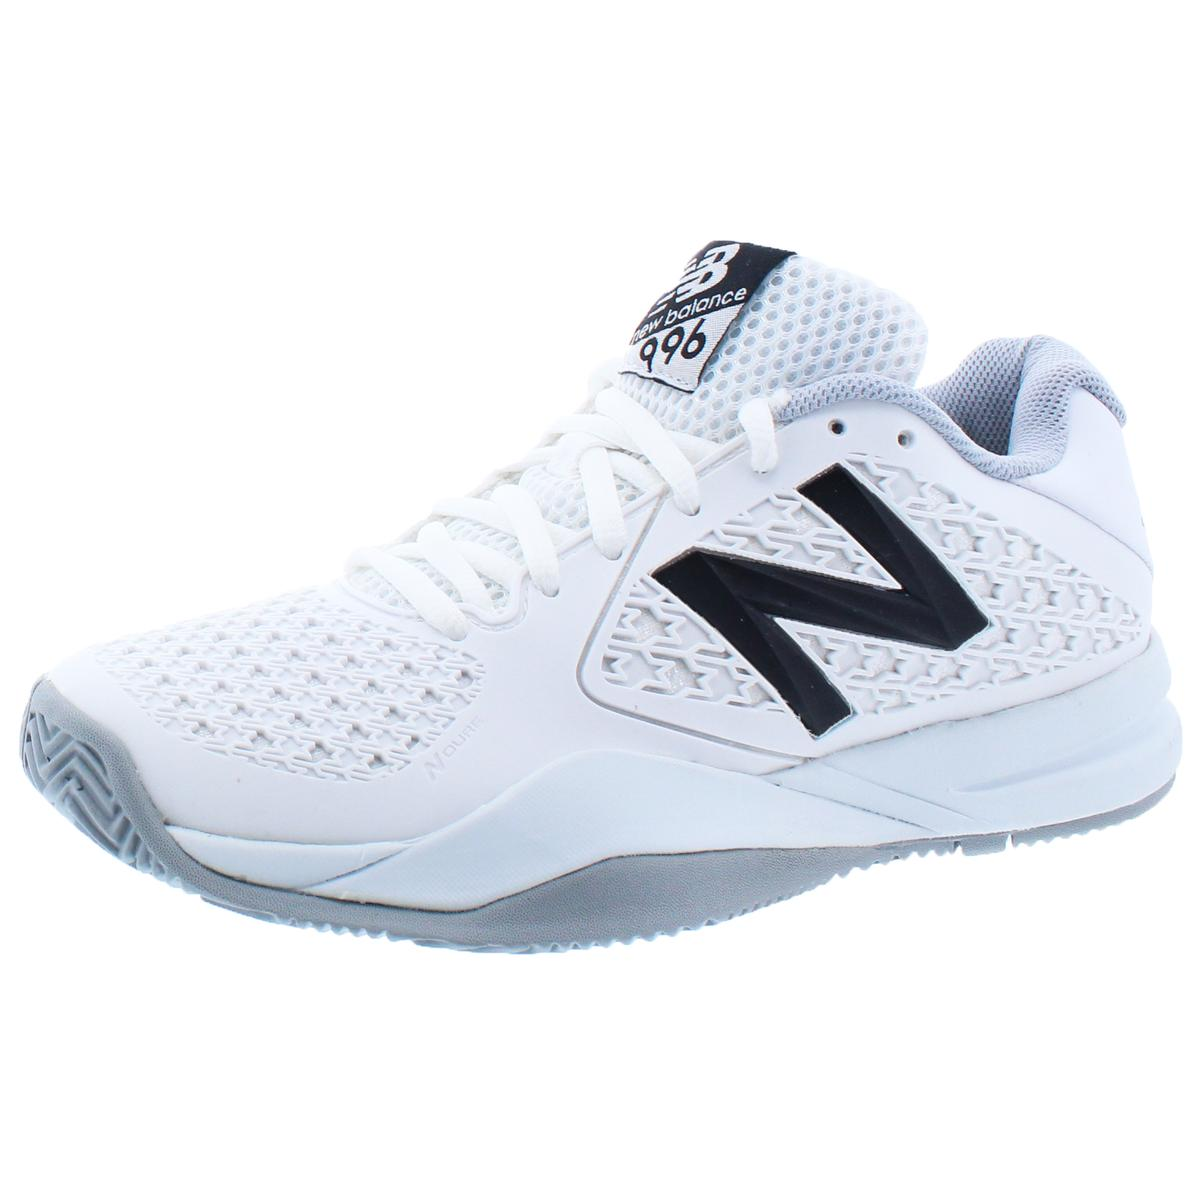 New 996 Balance Damenschuhe 996 New Weiß Tennis Schuhes Sneakers 9.5 Medium (B,M ... 2e84f7